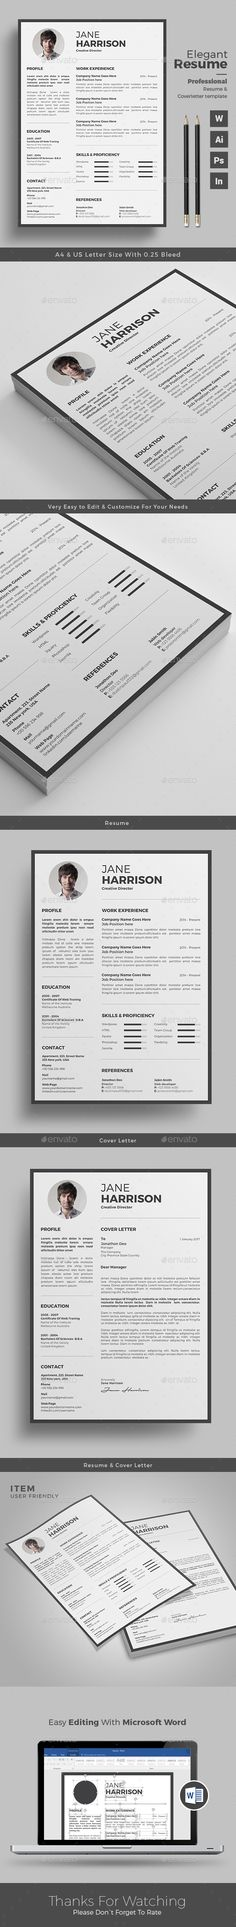 Professional Resume Design Word Template with Cover Letter - template for resume word